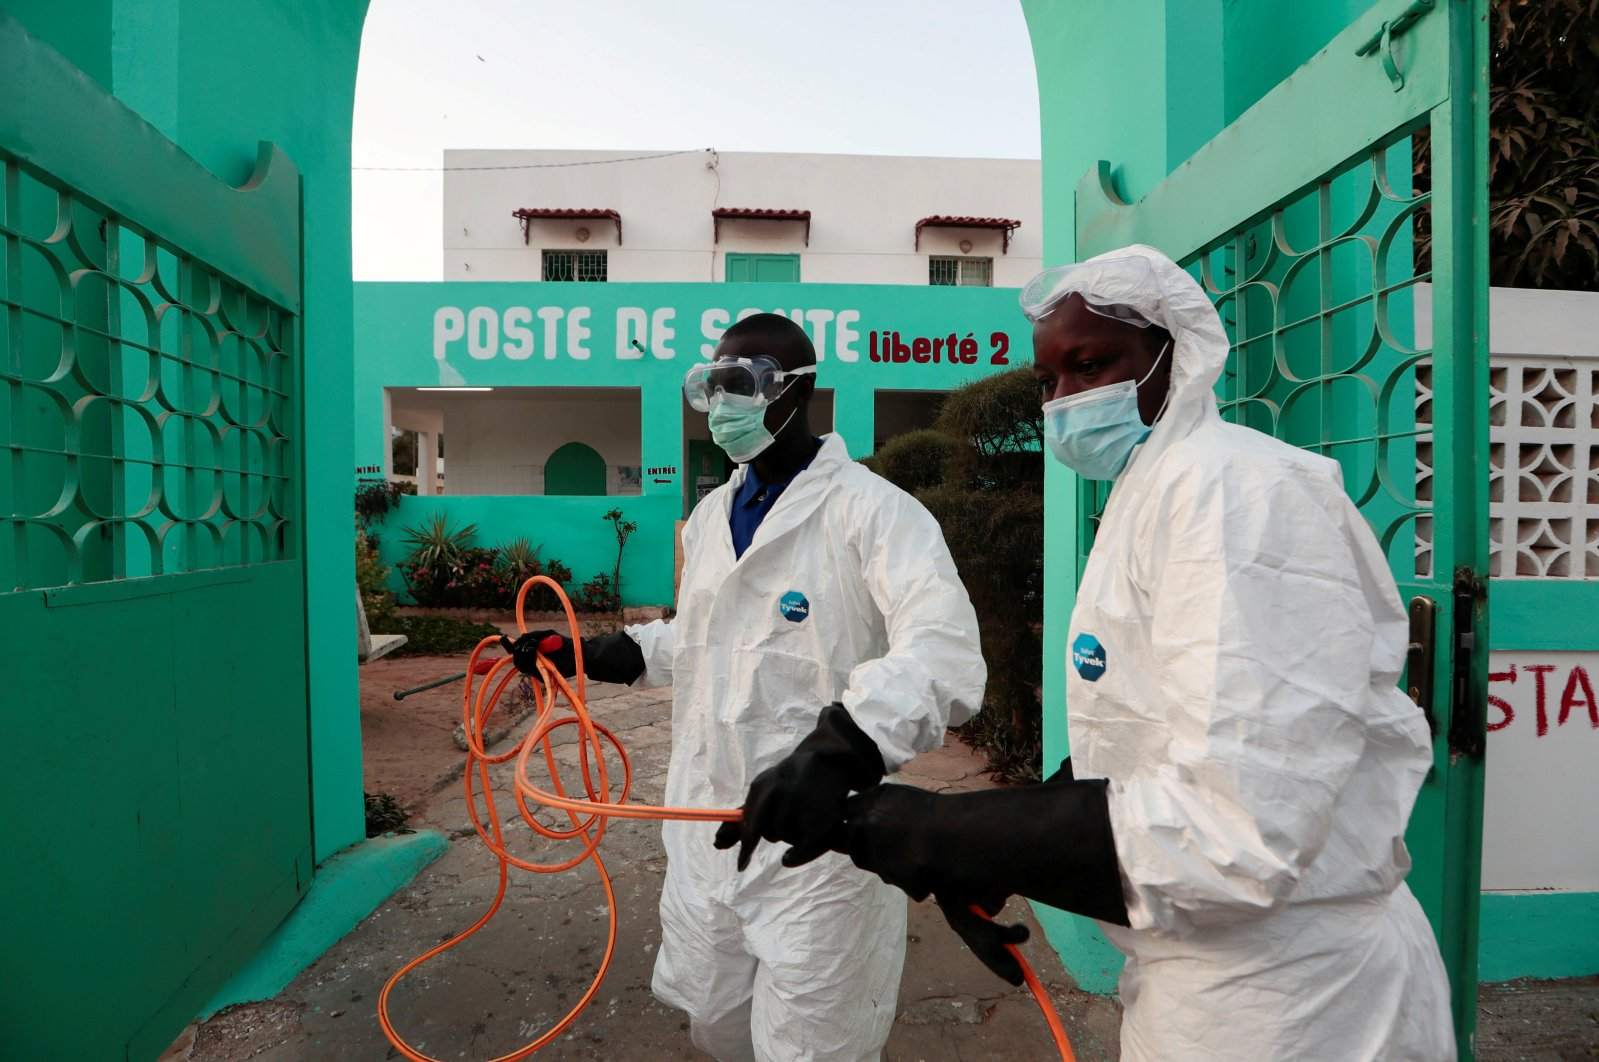 Members of local hygiene services wear protective suits and face masks, as they prepare to disinfect a health center to stop the spread of COVID-19 in Dakar, Senegal, Wednesday, April 1, 2020. (Reuters Photo)